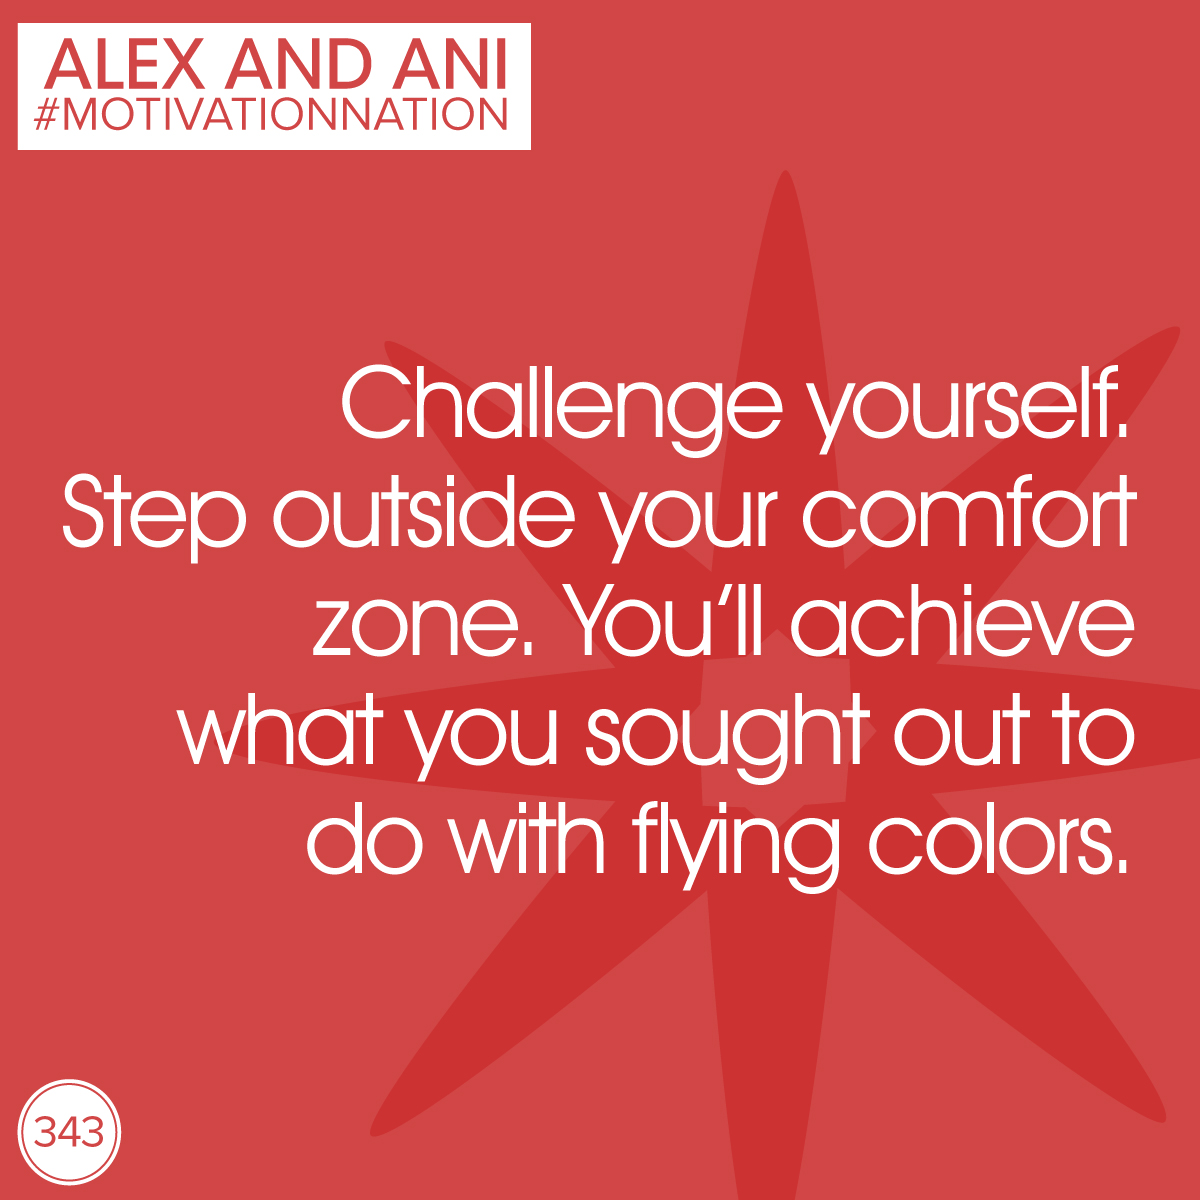 alexandani :     Some things are well worth the risk.  #motivationnation       Challenging yourself to do the unexpected (within reason and for good reason) can be incredibly rewarding!    1- Strike up a conversation with someone you never talk to.   2- Move the cookie off the plate and replace it with fruit.   3- Workout 15 minutes longer than you normally would.   In Style Health and Energy, we show the world possibility.  Challenge your comfort zone - the view is incredible!